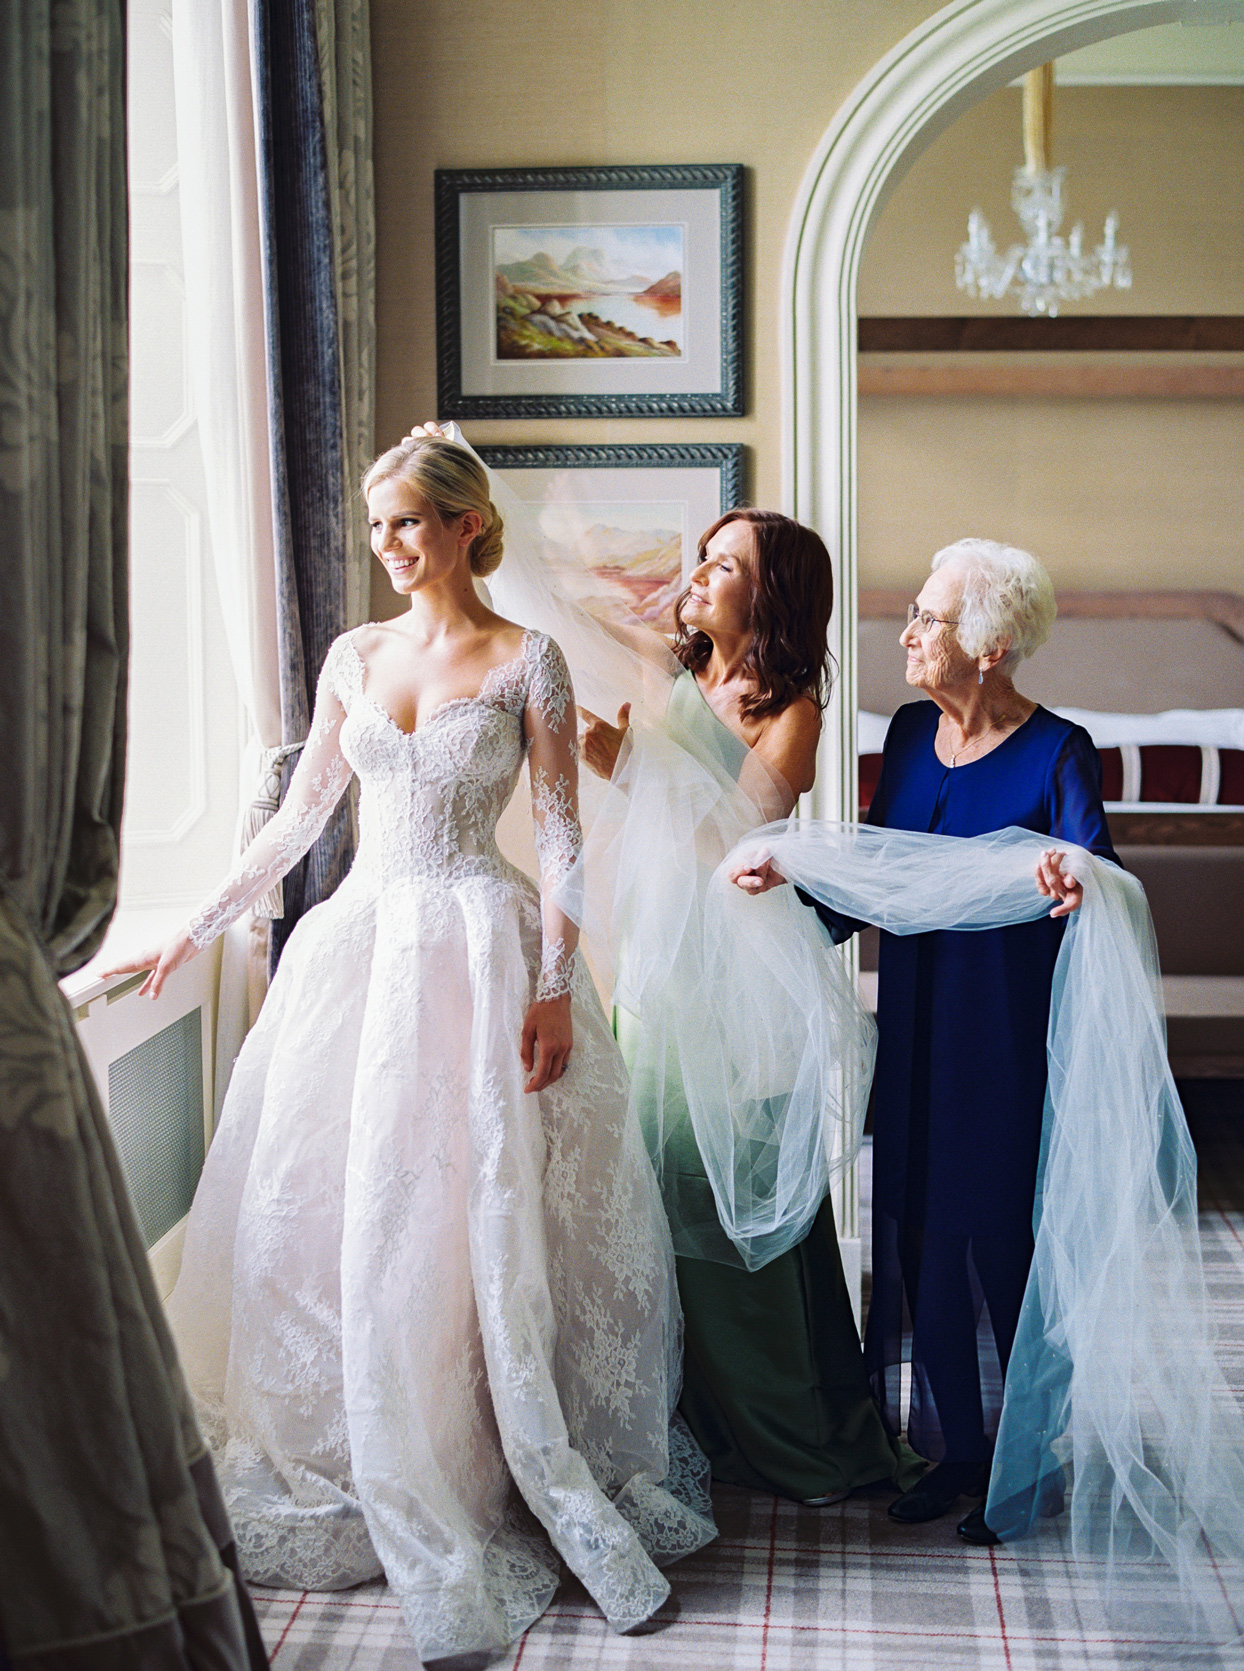 mother and grandmother of the bride putting the bride's veil on